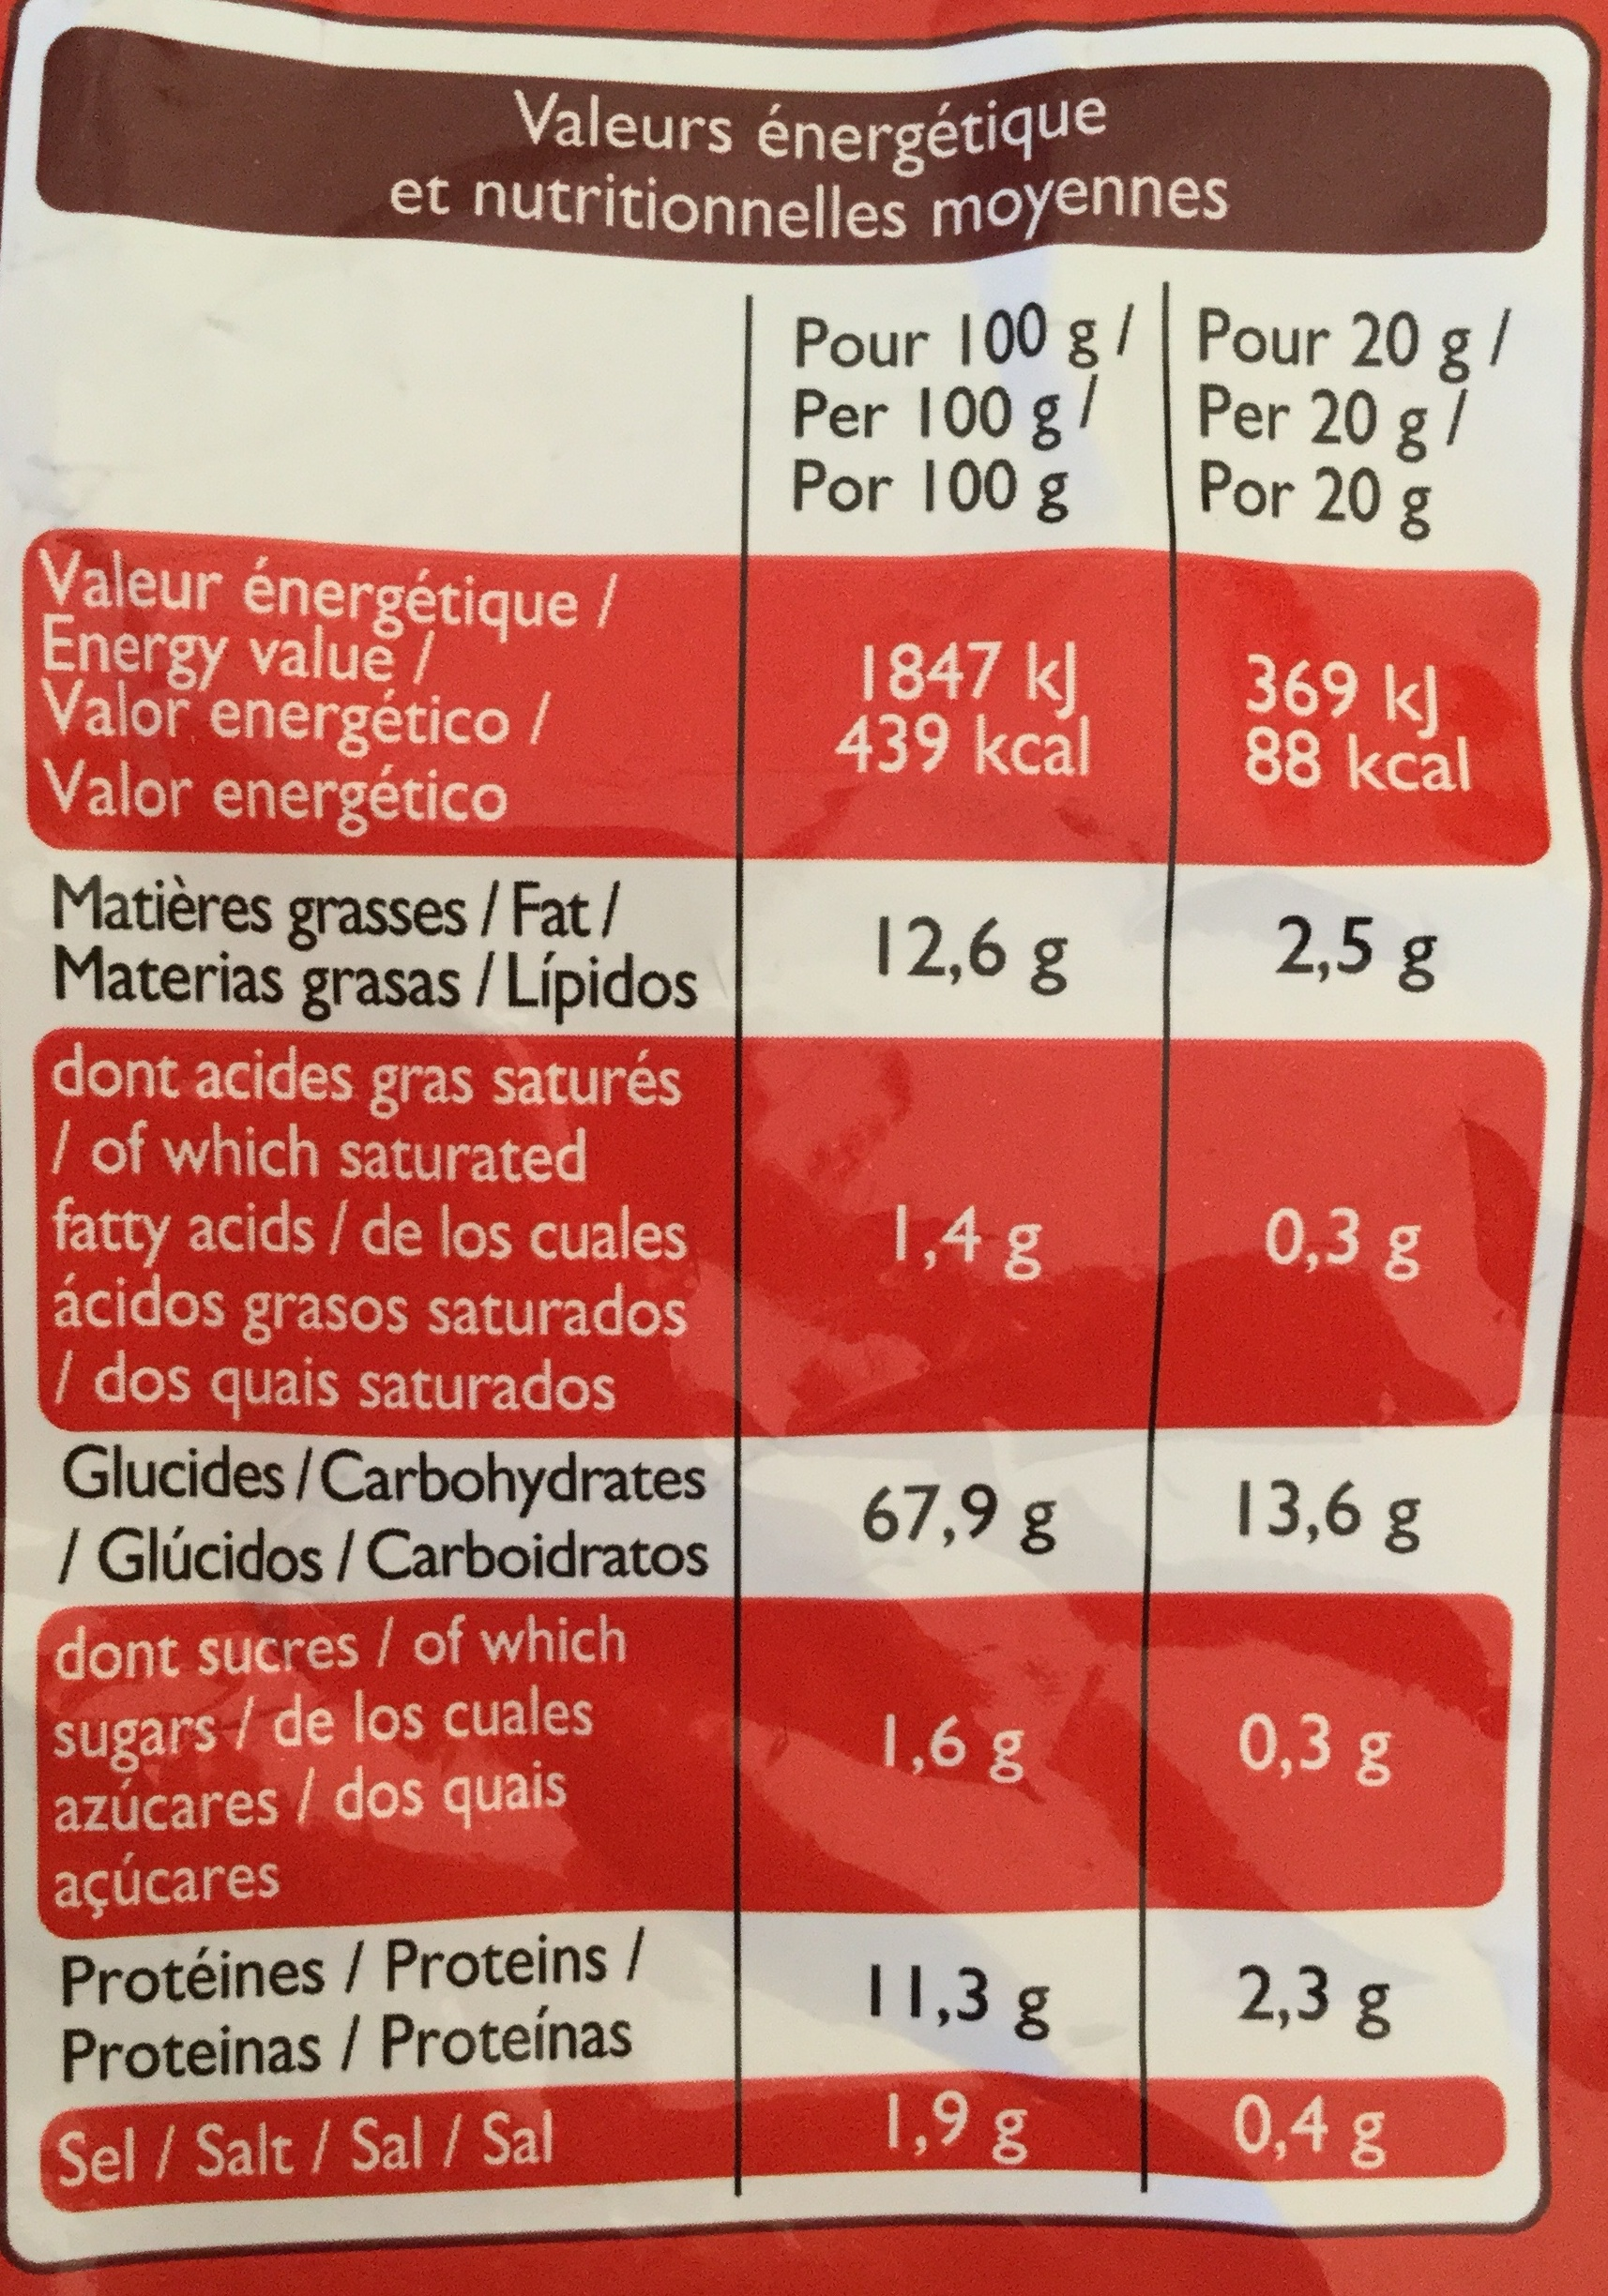 Curves cacahuètes - Nutrition facts - fr